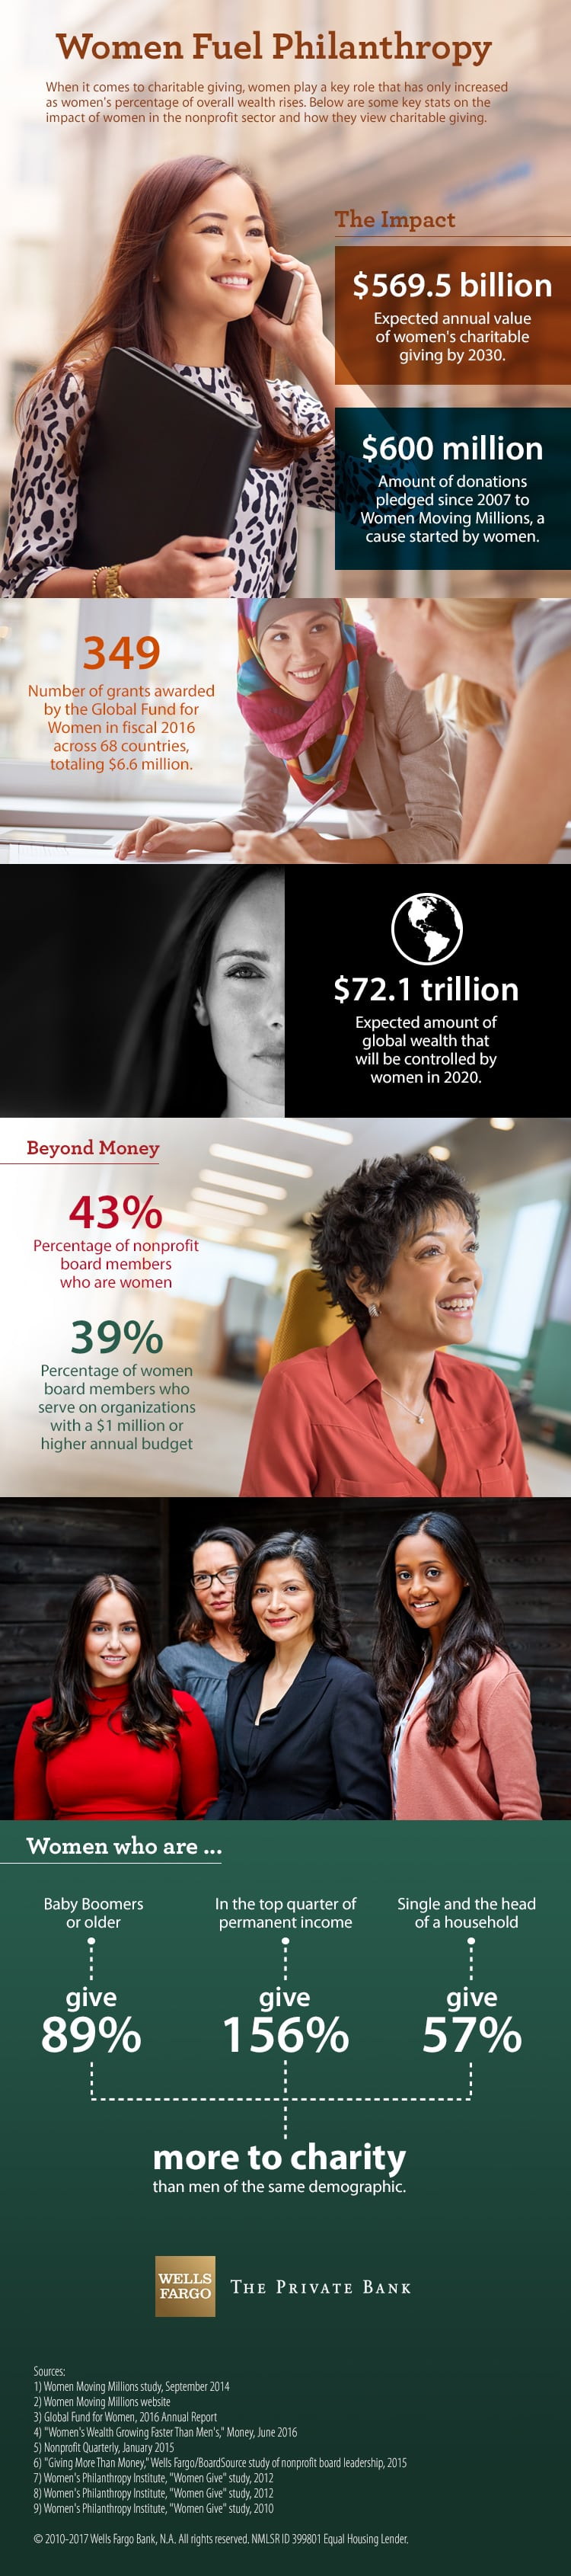 "Headline is Women Fuel Philanthropy. When it comes to charitable giving, women play a key role that has only increased as women's percentage of overall wealth rises. Below are some key stats on the impact of women in the nonprofit sector and how they view charitable giving. The first section is called The Impact, and the first stat says the expected annual value of women's charitable giving by 2030 is $569.5 billion. Since 2007, $600 million of donations have been pledged to Women Moving Millions, a cause started by women. In fiscal 2016, the Global Fund for Women awarded 349 grants across 68 countries, totaling $6.6 million. And the expected amount of global wealth that will be controlled by women in 2020 is $72.1 trillion. The second section is called Beyond Money. Stats say that 43 percent of nonprofit board members are women, and 39 percent of women board members serve on organizations with a $1 million or higher annual budget. The final section details some differences between men and women. Women who are Baby Boomers or older give 89 percent more to charity than me of the same demographic. Women who are in the top quarter of permanent income give 156 percent more to charity than men in the top quarter of permanent income. Single women who are head of a household give 57 percent more to charity than corresponding men. Sources for the infographic are a Women Moving Millions study from September 2014; the Women Moving Millions website; the Global Fund for Women 2016 Annual Report; a Money magazine story ""Women's Wealth Growing Faster Than Men's,"" from June 2016; Nonprofit Quarterly from January 2015; a Wells Fargo/BoardSource study of nonprofit board leadership from 2015; and the Women's Philanthropy Institute ""Women Give"" reports from 2010 and 2012."